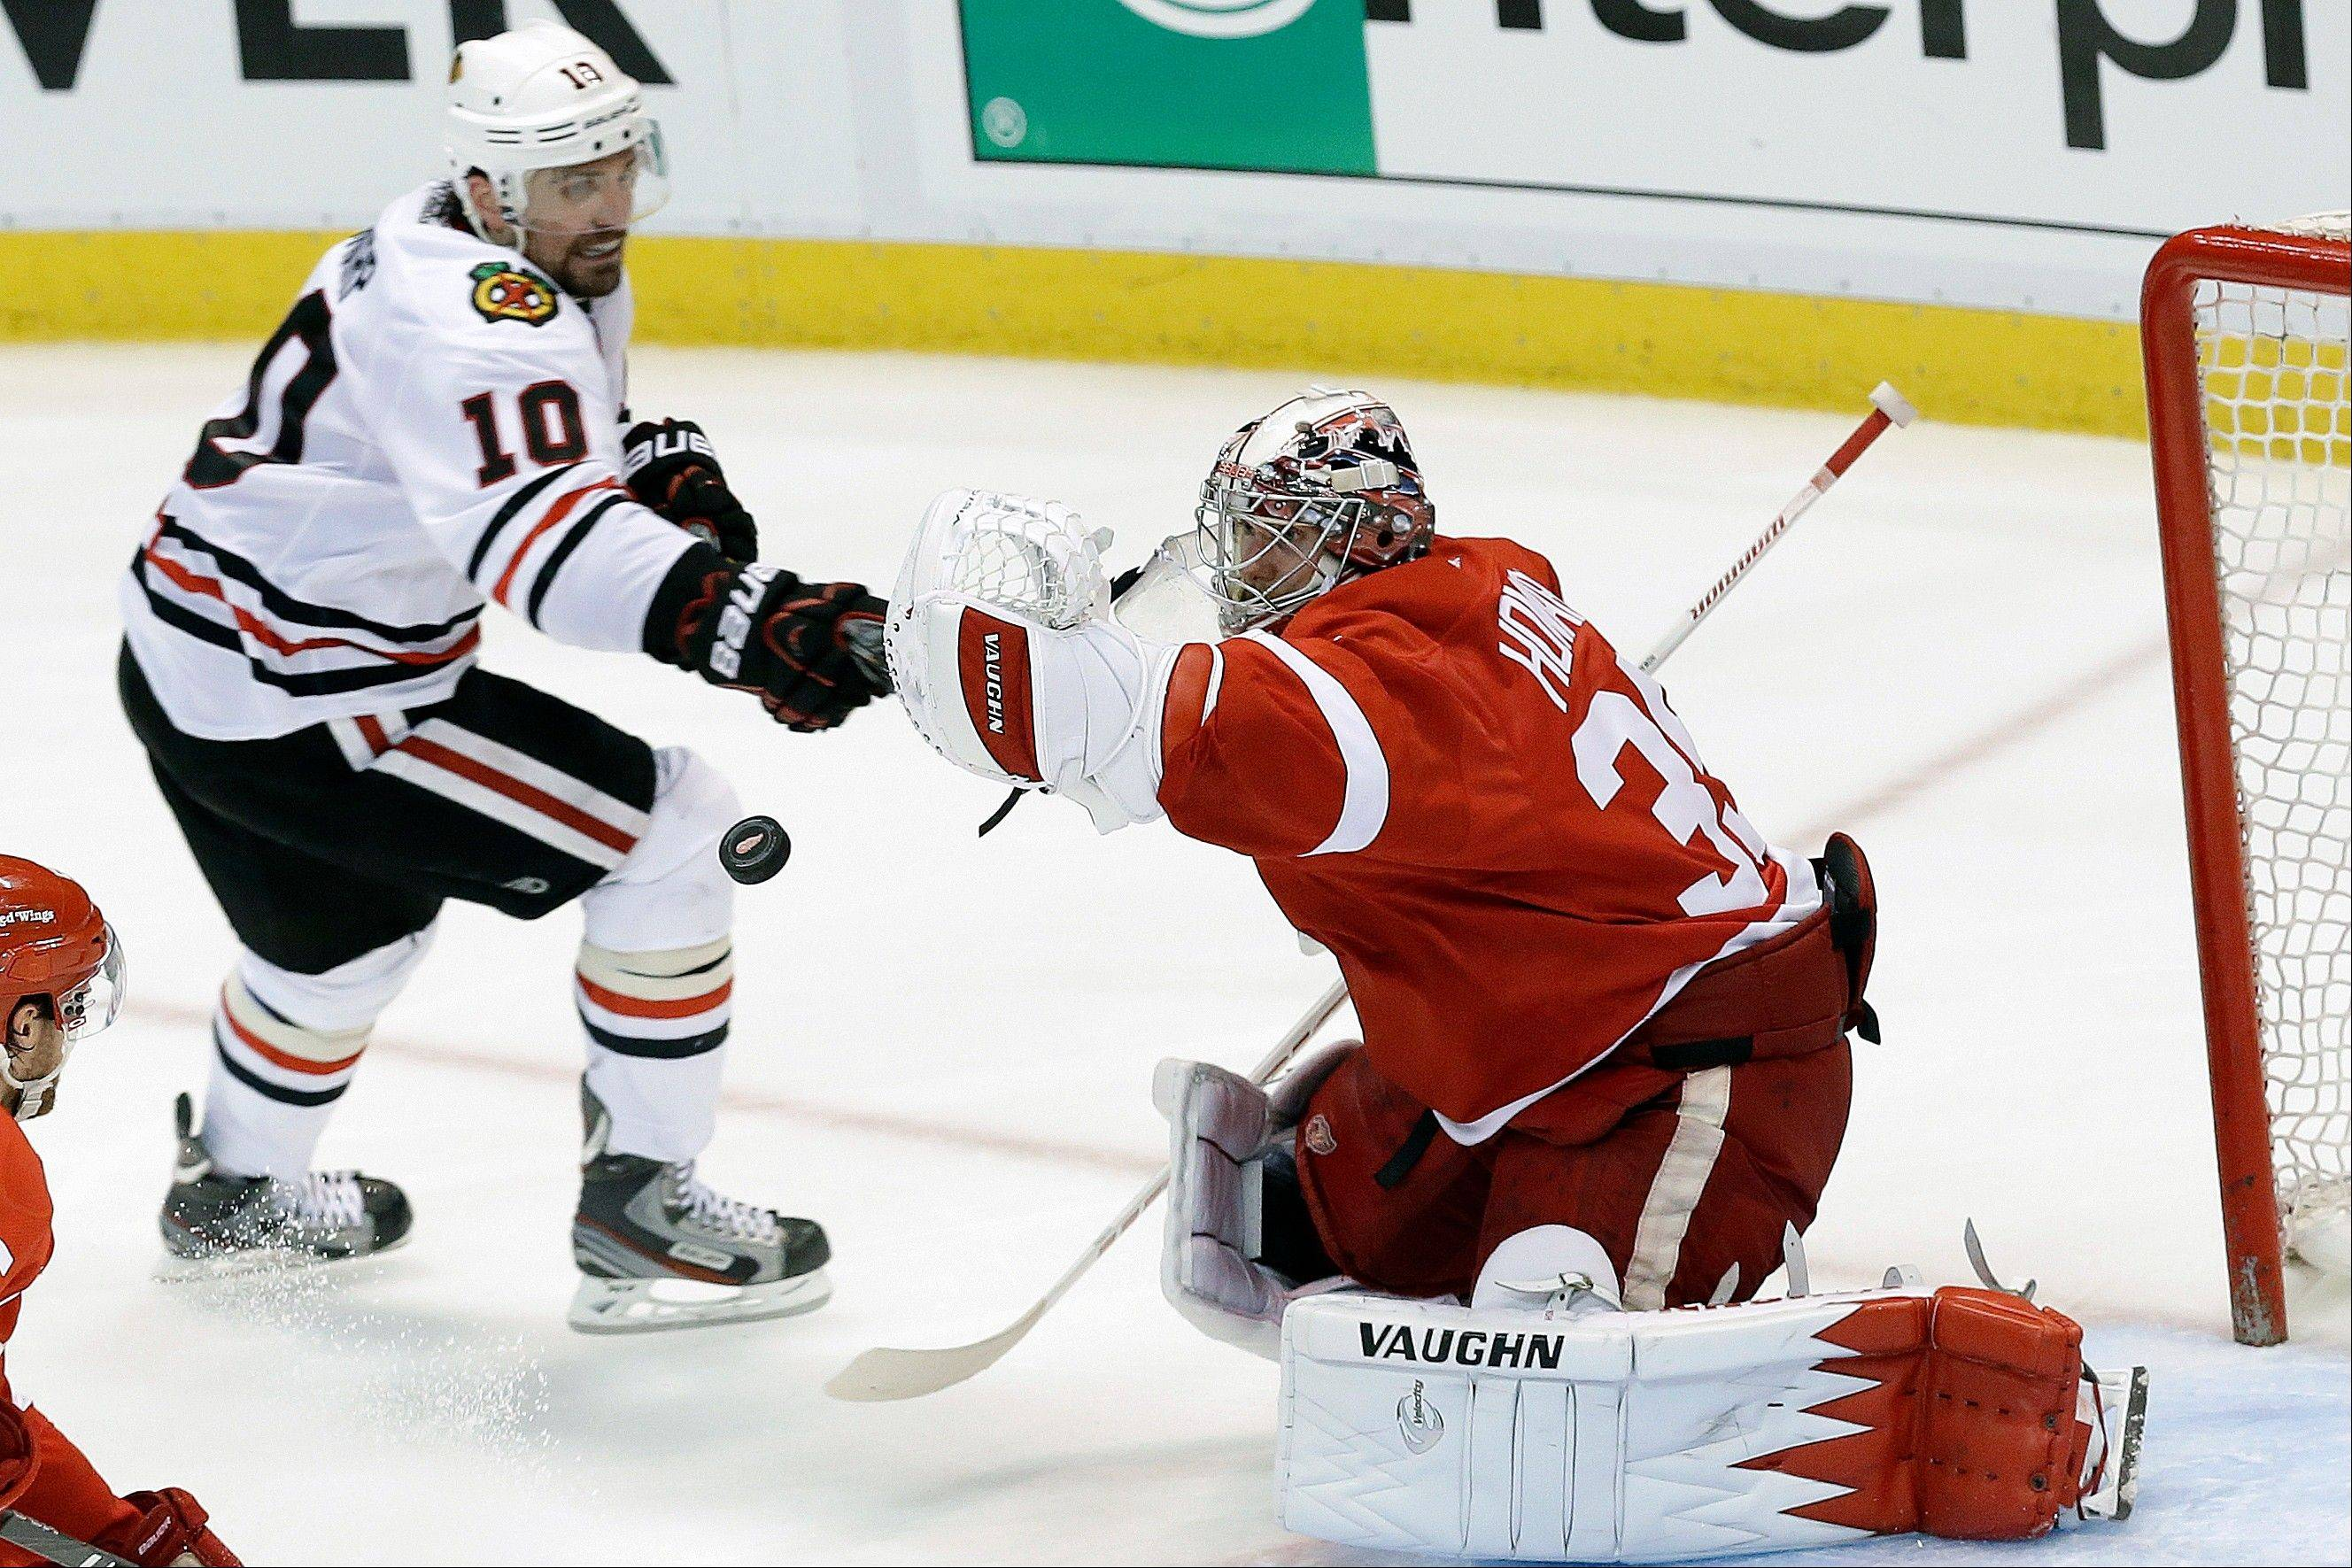 Now Blackhawks face pretty much a must-win situation